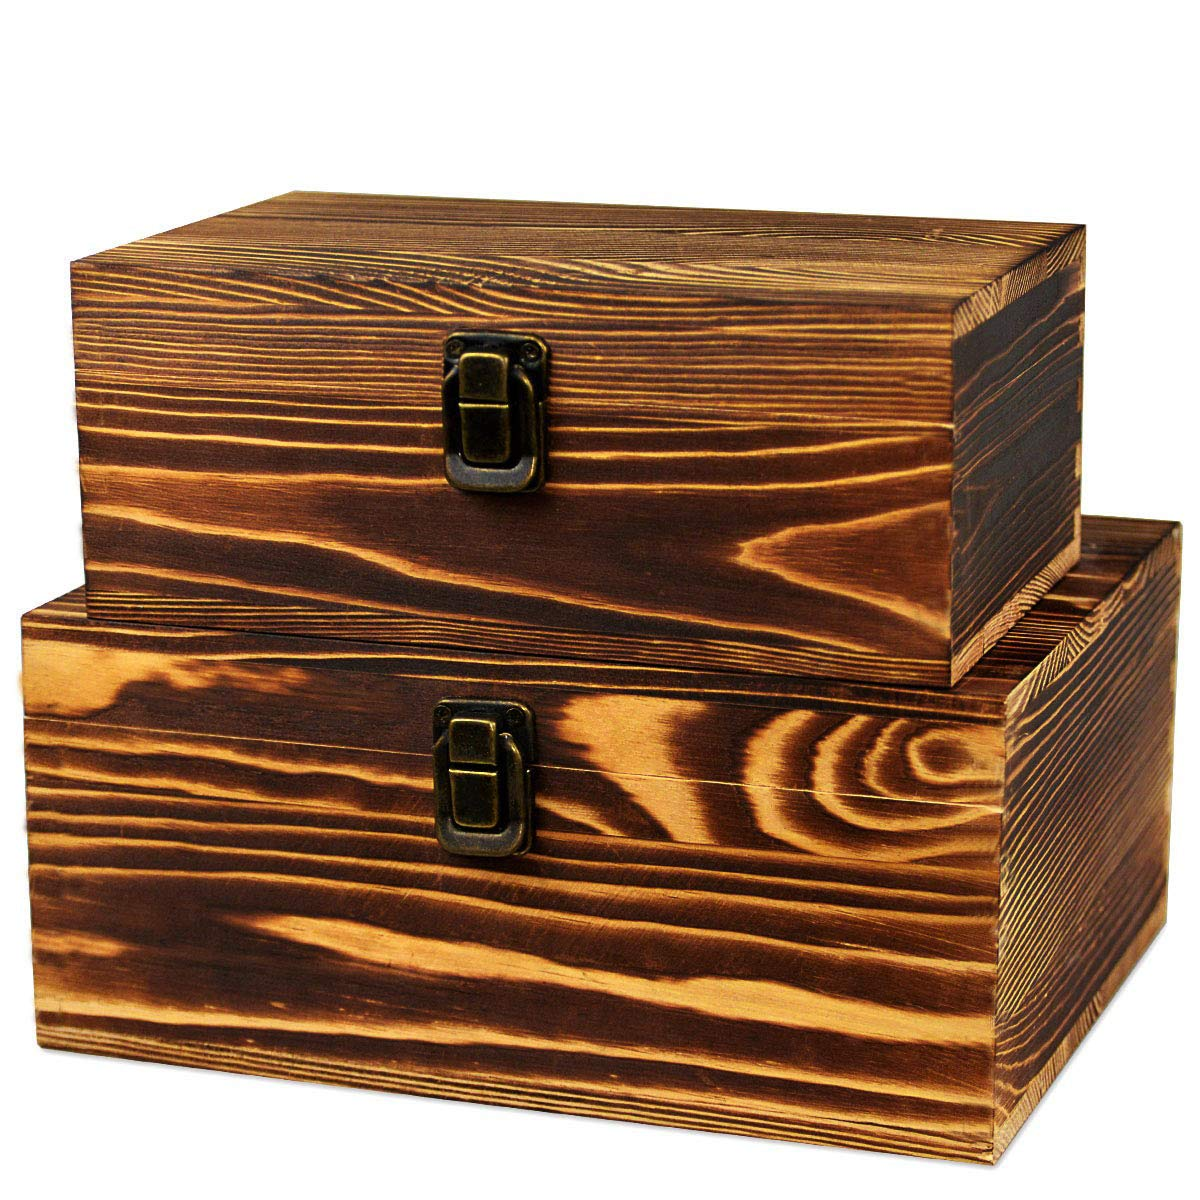 2 Pack Real Wood Box Treasure Chest Memory Hobby Preservation Rustic Decorative Archival Organizer with Latch Lock for Jewelry Keepsake Gadget Trinkets Letter Sewing Cash Tea Photo Wooden Storage Box by BigHala